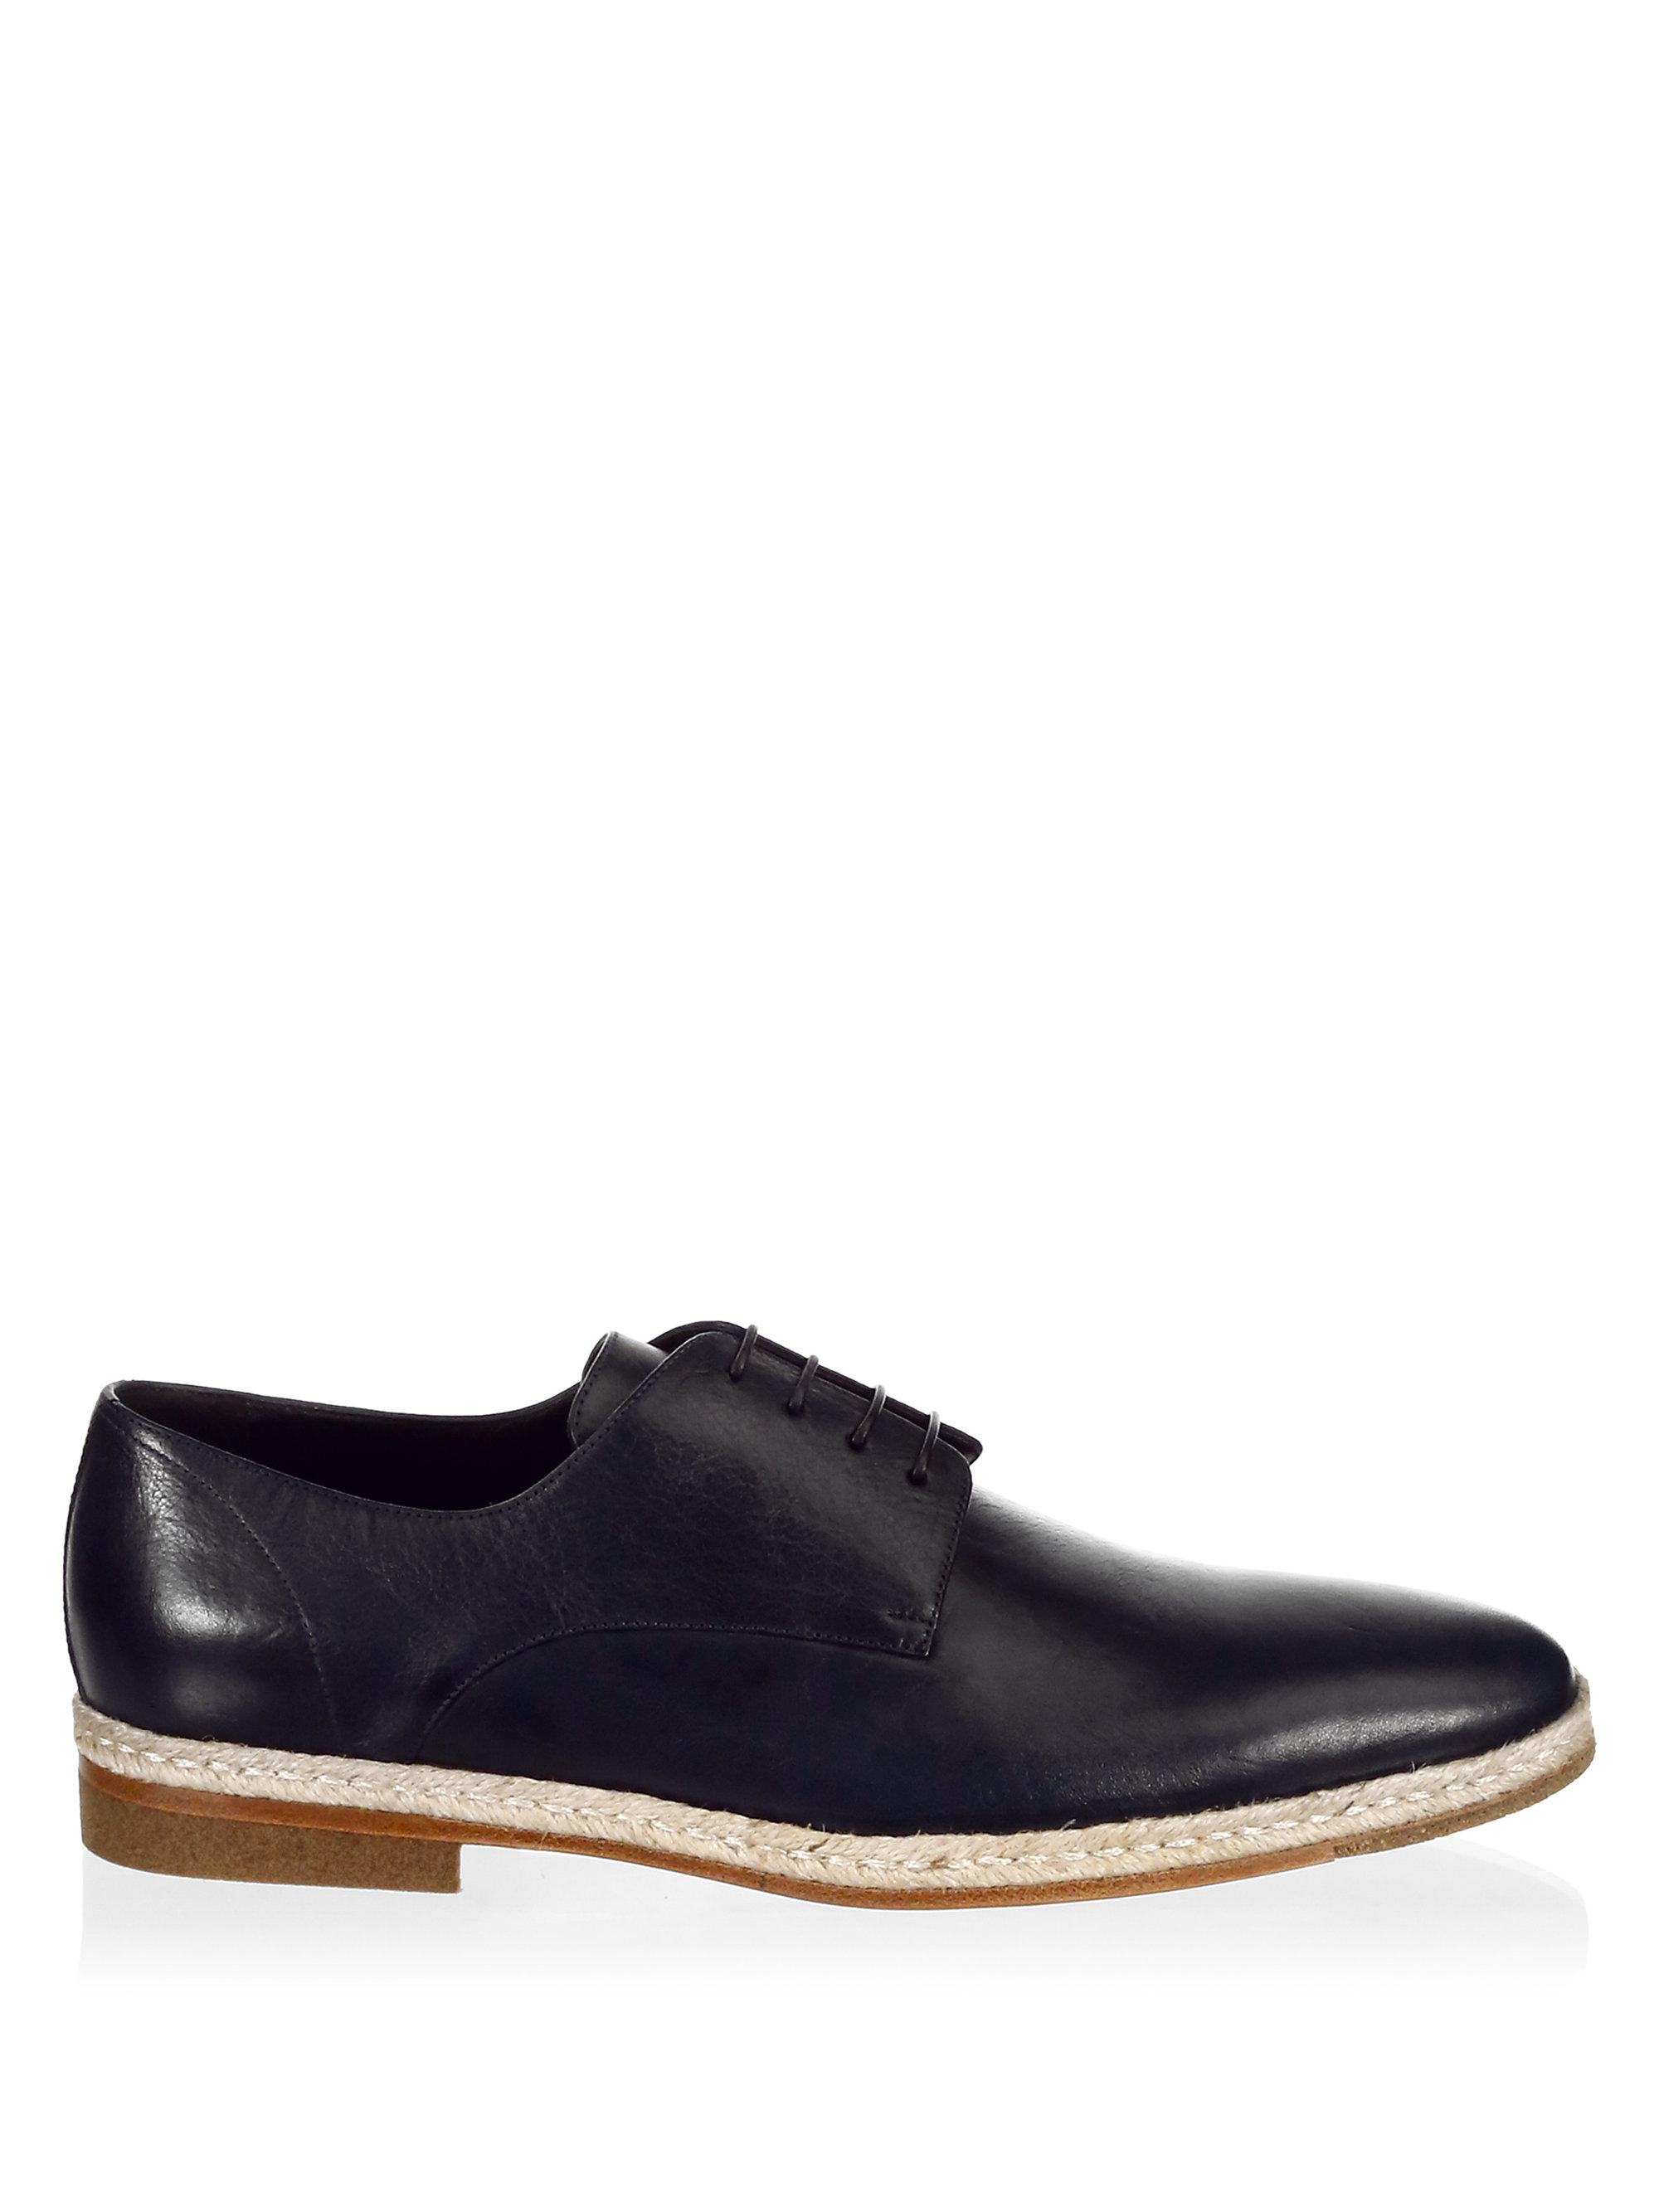 A.TESTONIClassic Leather Derbys 0wbHyMF